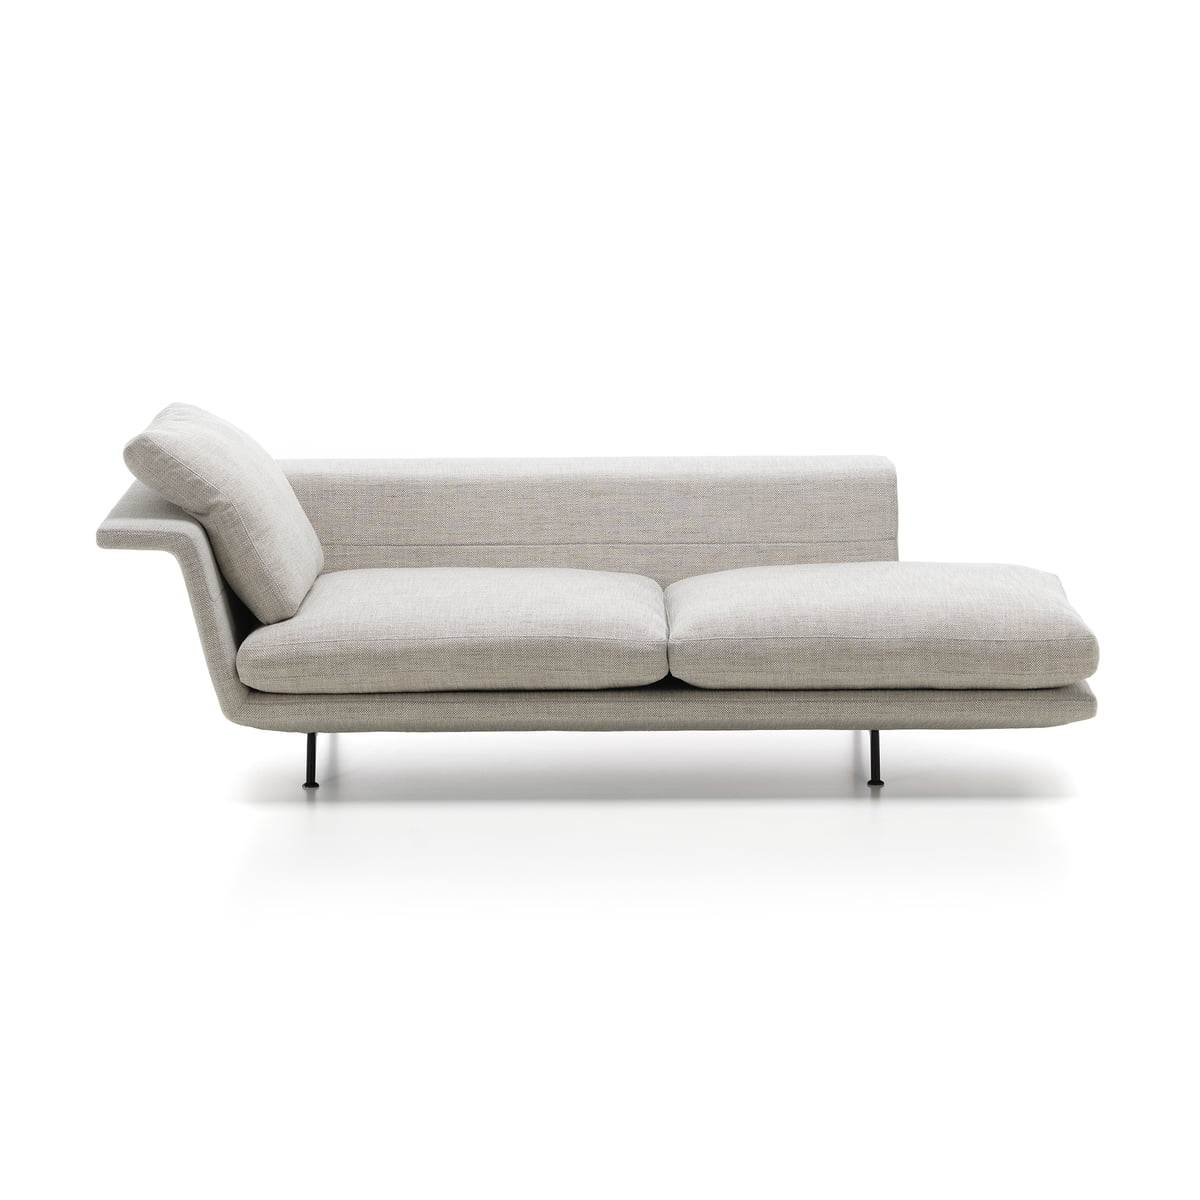 Grand Sofà | Antonio Citterio | Vitra | Connox on divan sofa, table sofa, pillow sofa, art sofa, fabric sofa, mattress sofa, beds sofa, bench sofa, lounge sofa, cushions sofa, glider sofa, ottoman sofa, bookcase sofa, bedroom sofa, chair sofa, settee sofa, recliner sofa, futon sofa, storage sofa, couch sofa,